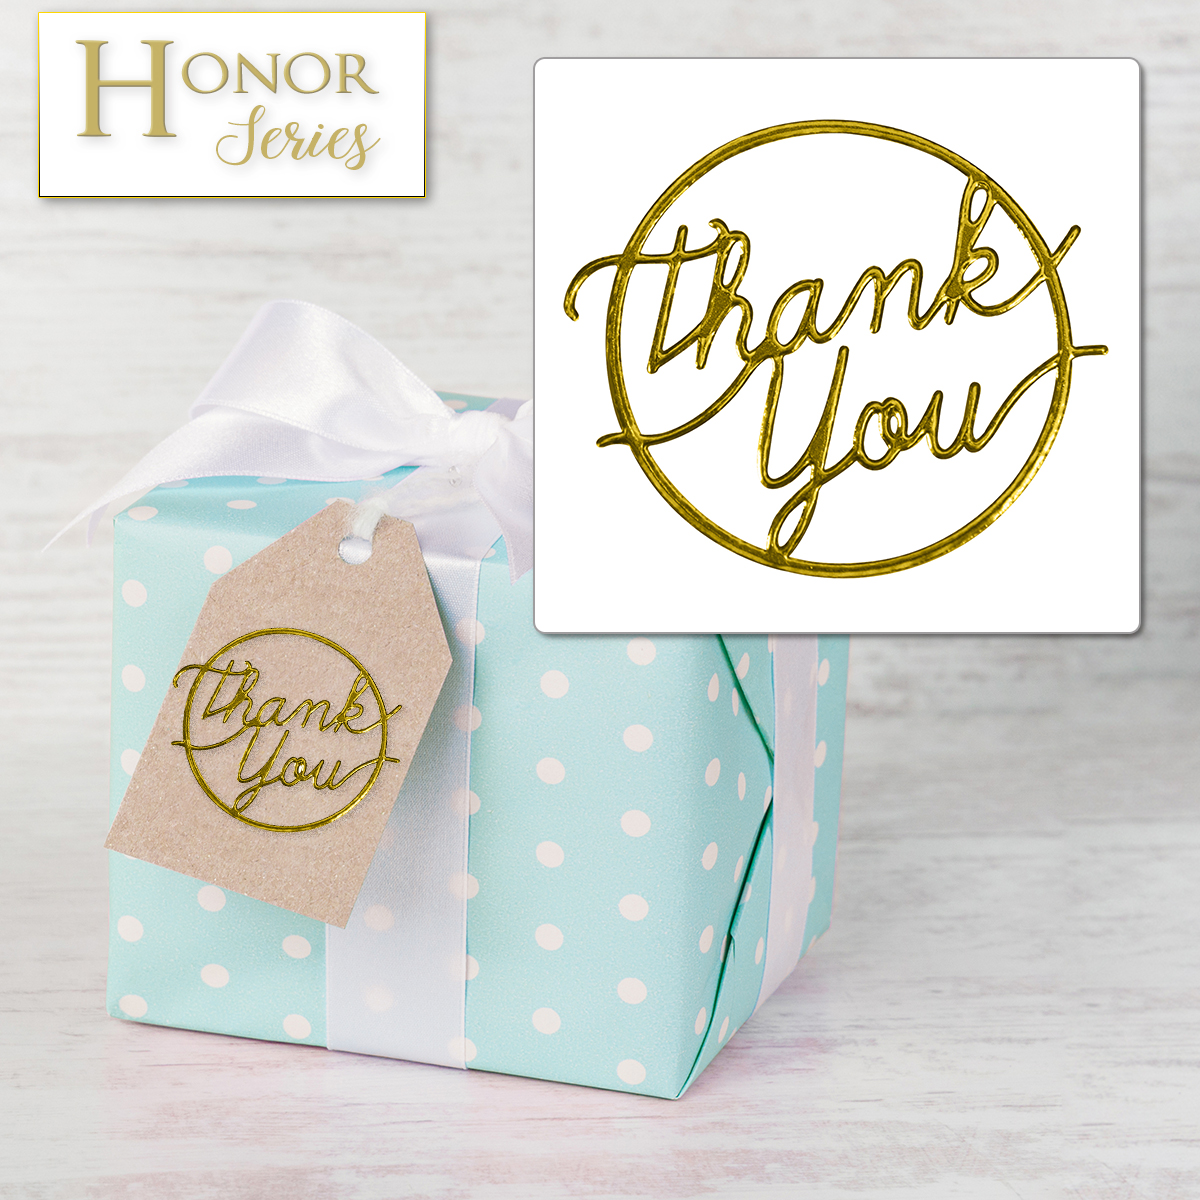 Honor Series - Delicate Touch Gold Thank You Seals - 25 Count